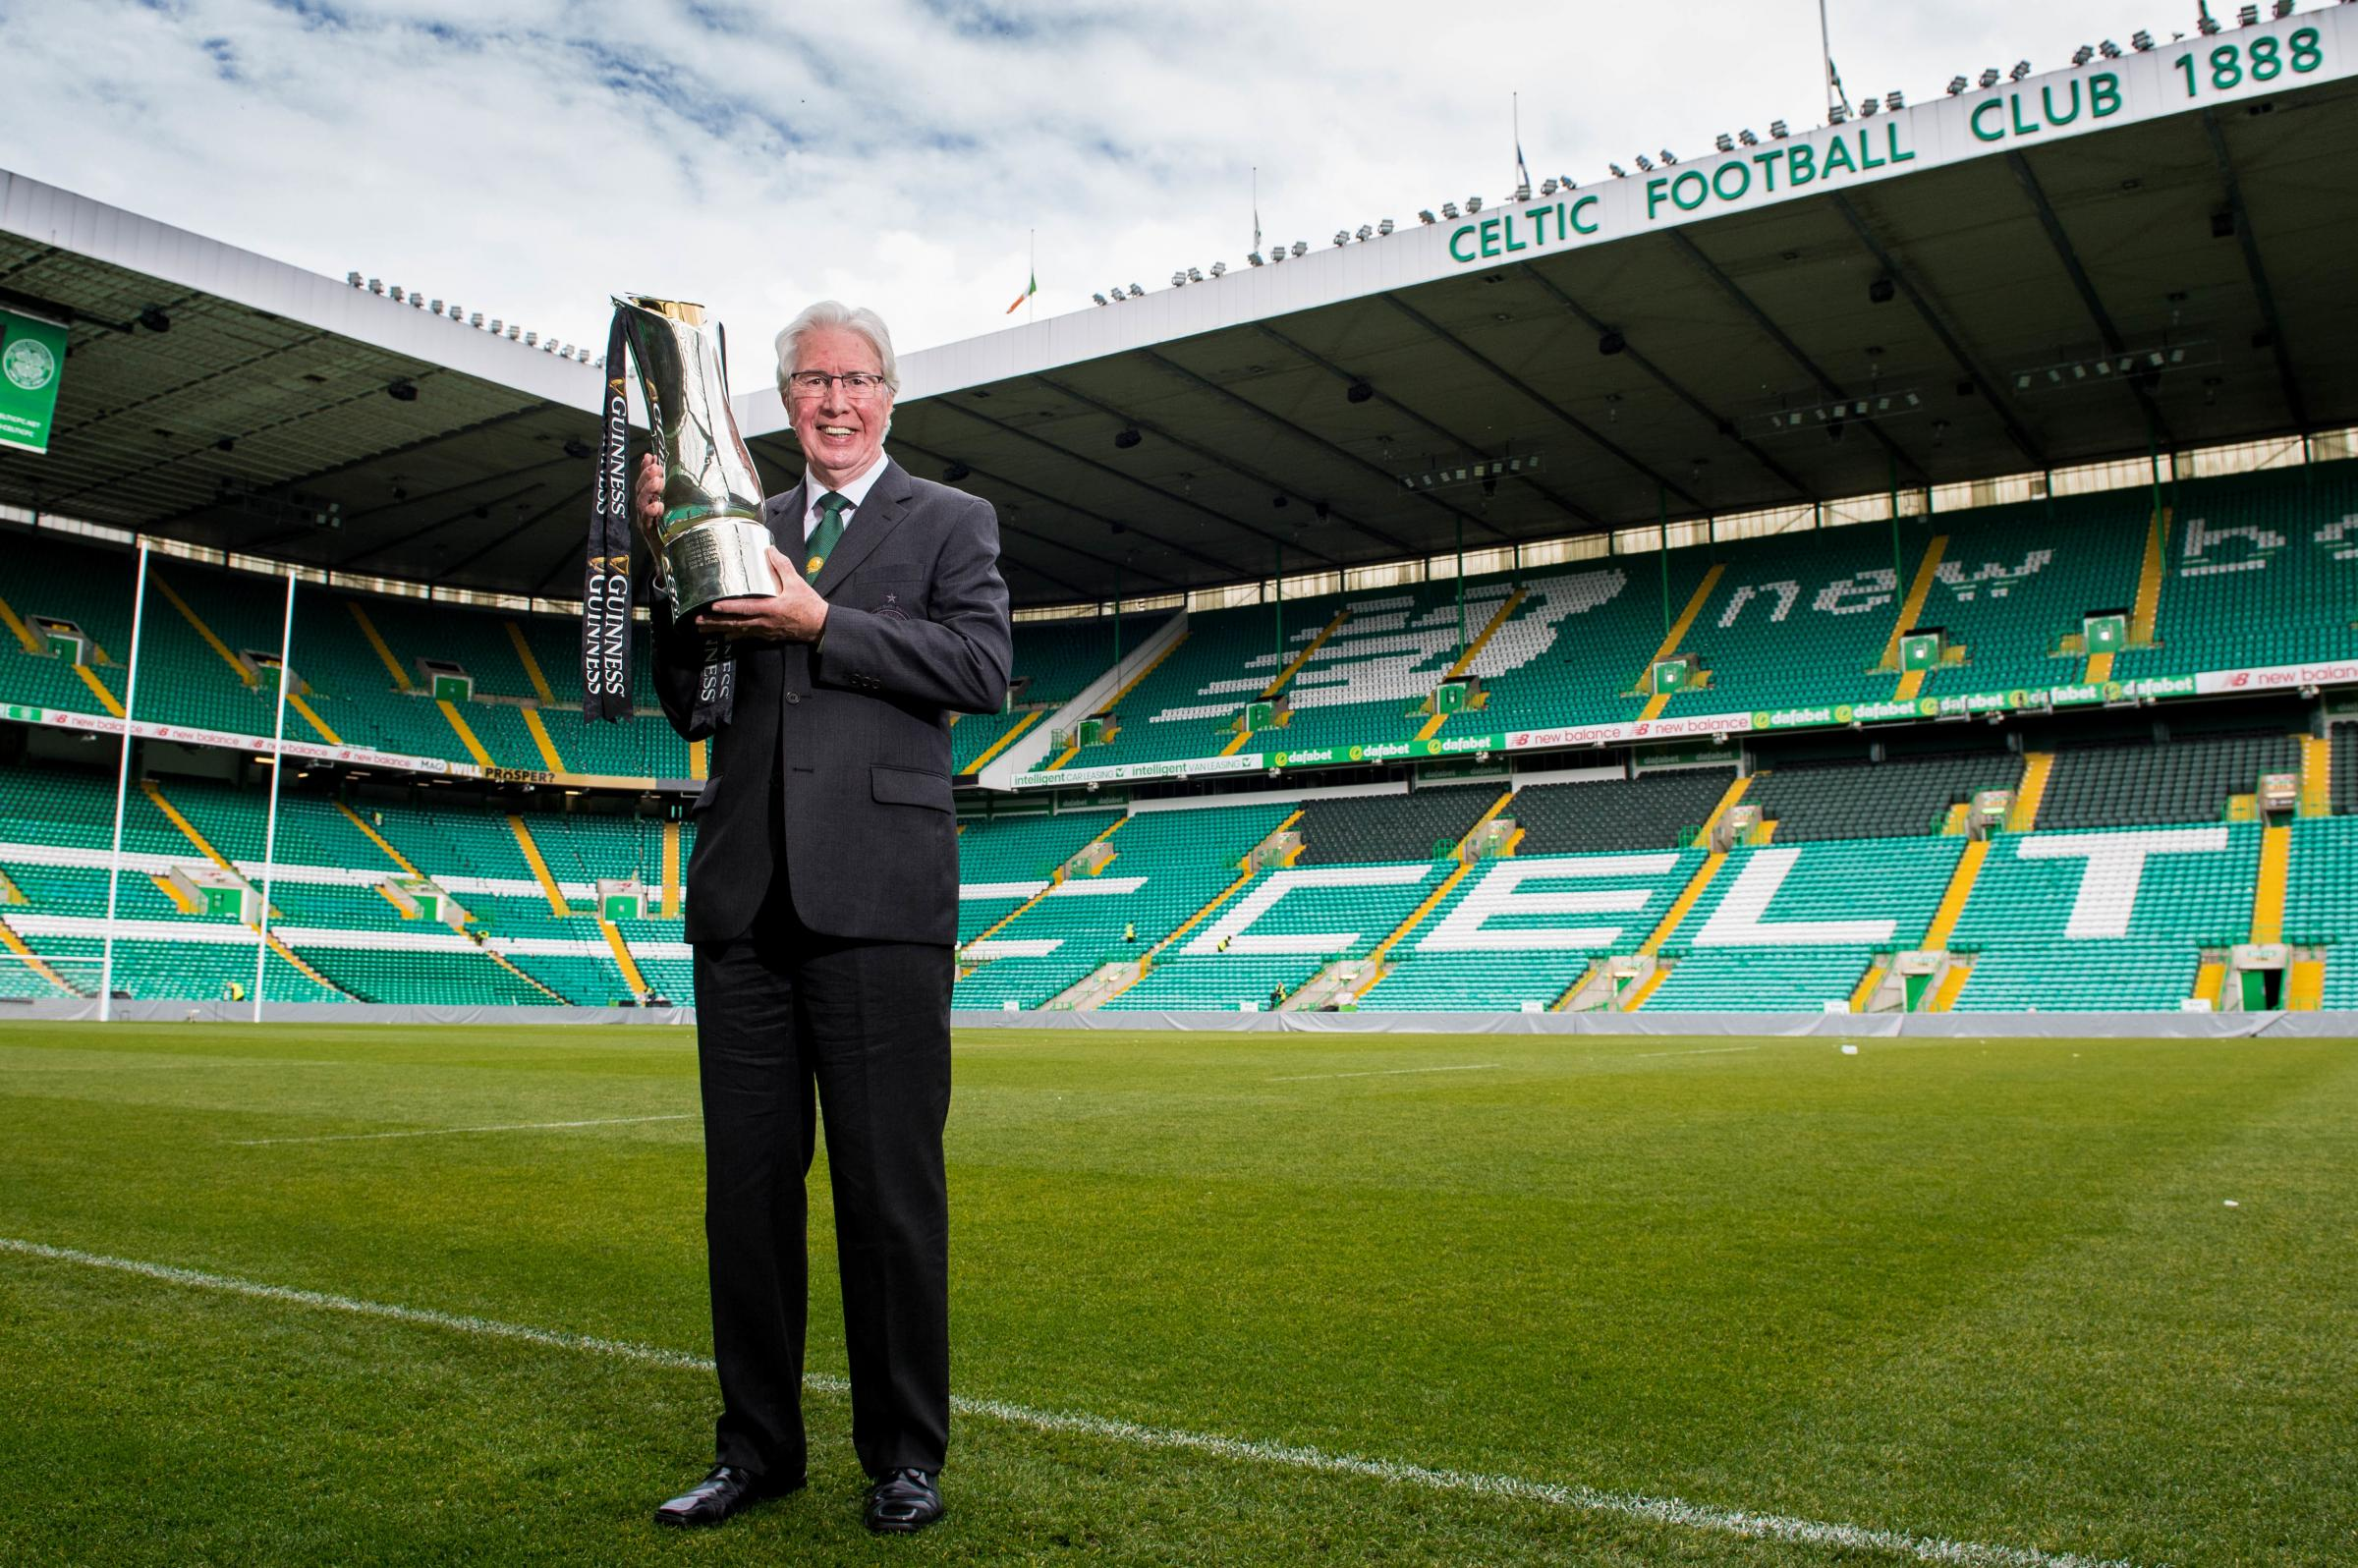 Jim Craig: This Celtic team has been disappointing in Europe - the new manager has to change that